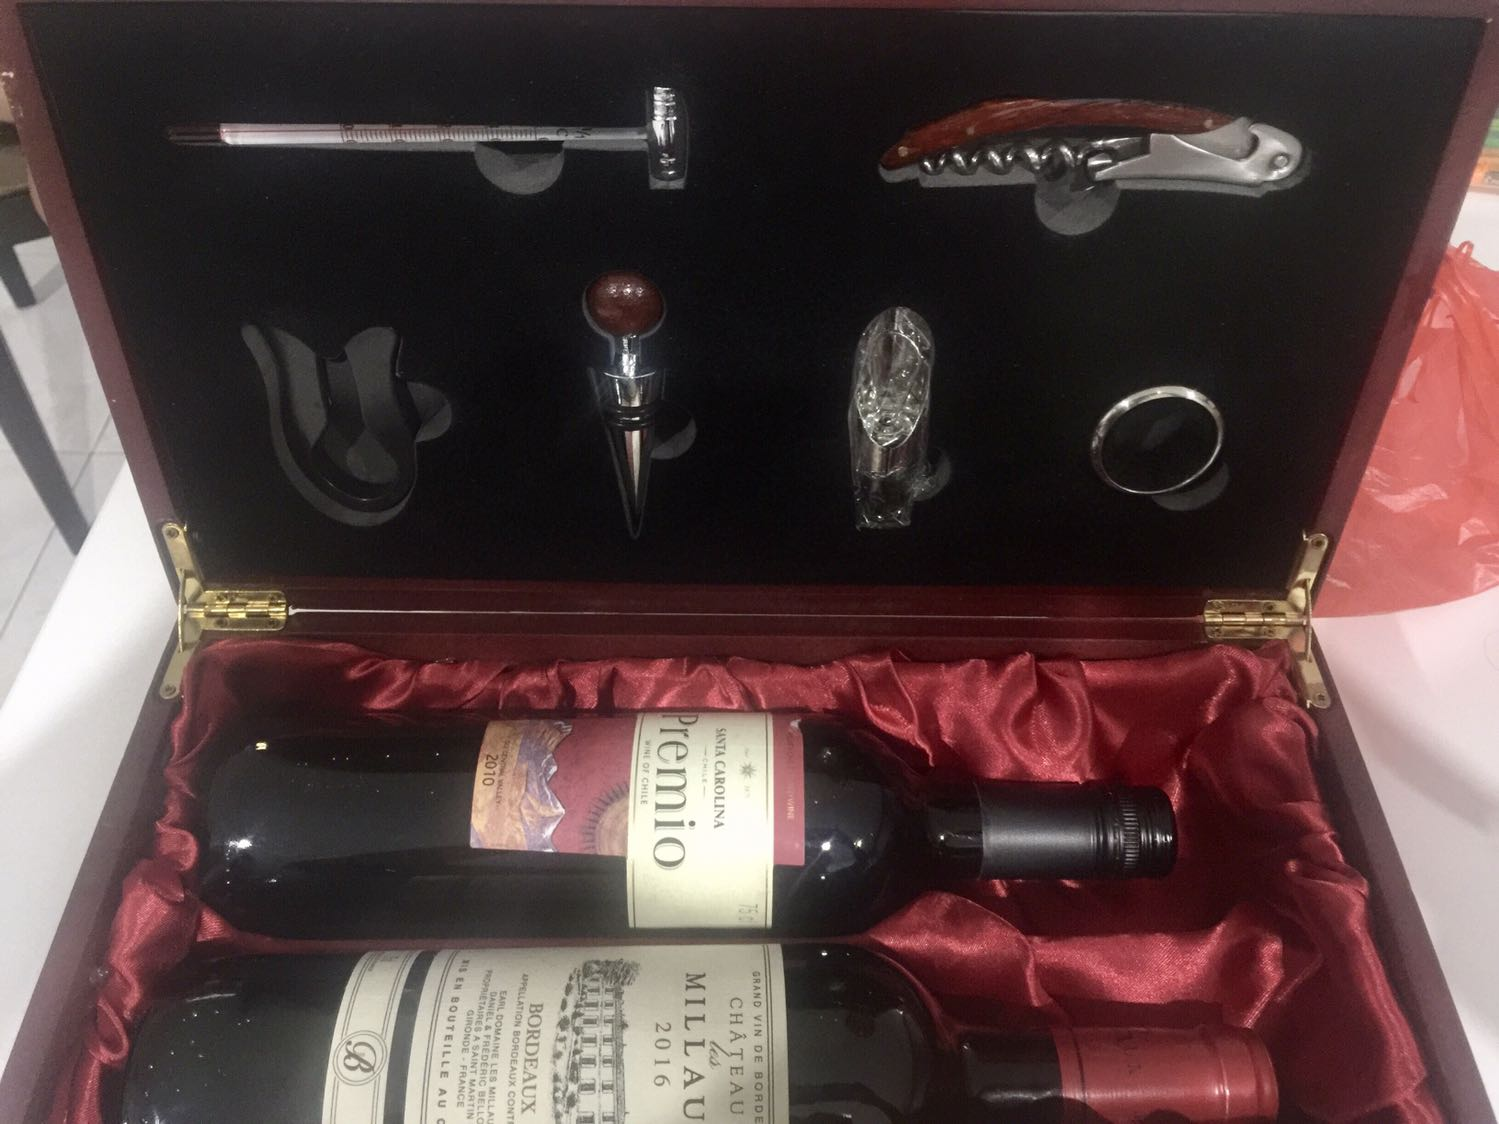 Wine Gift Box With 2 Bottles Of Wine Plus Accessories